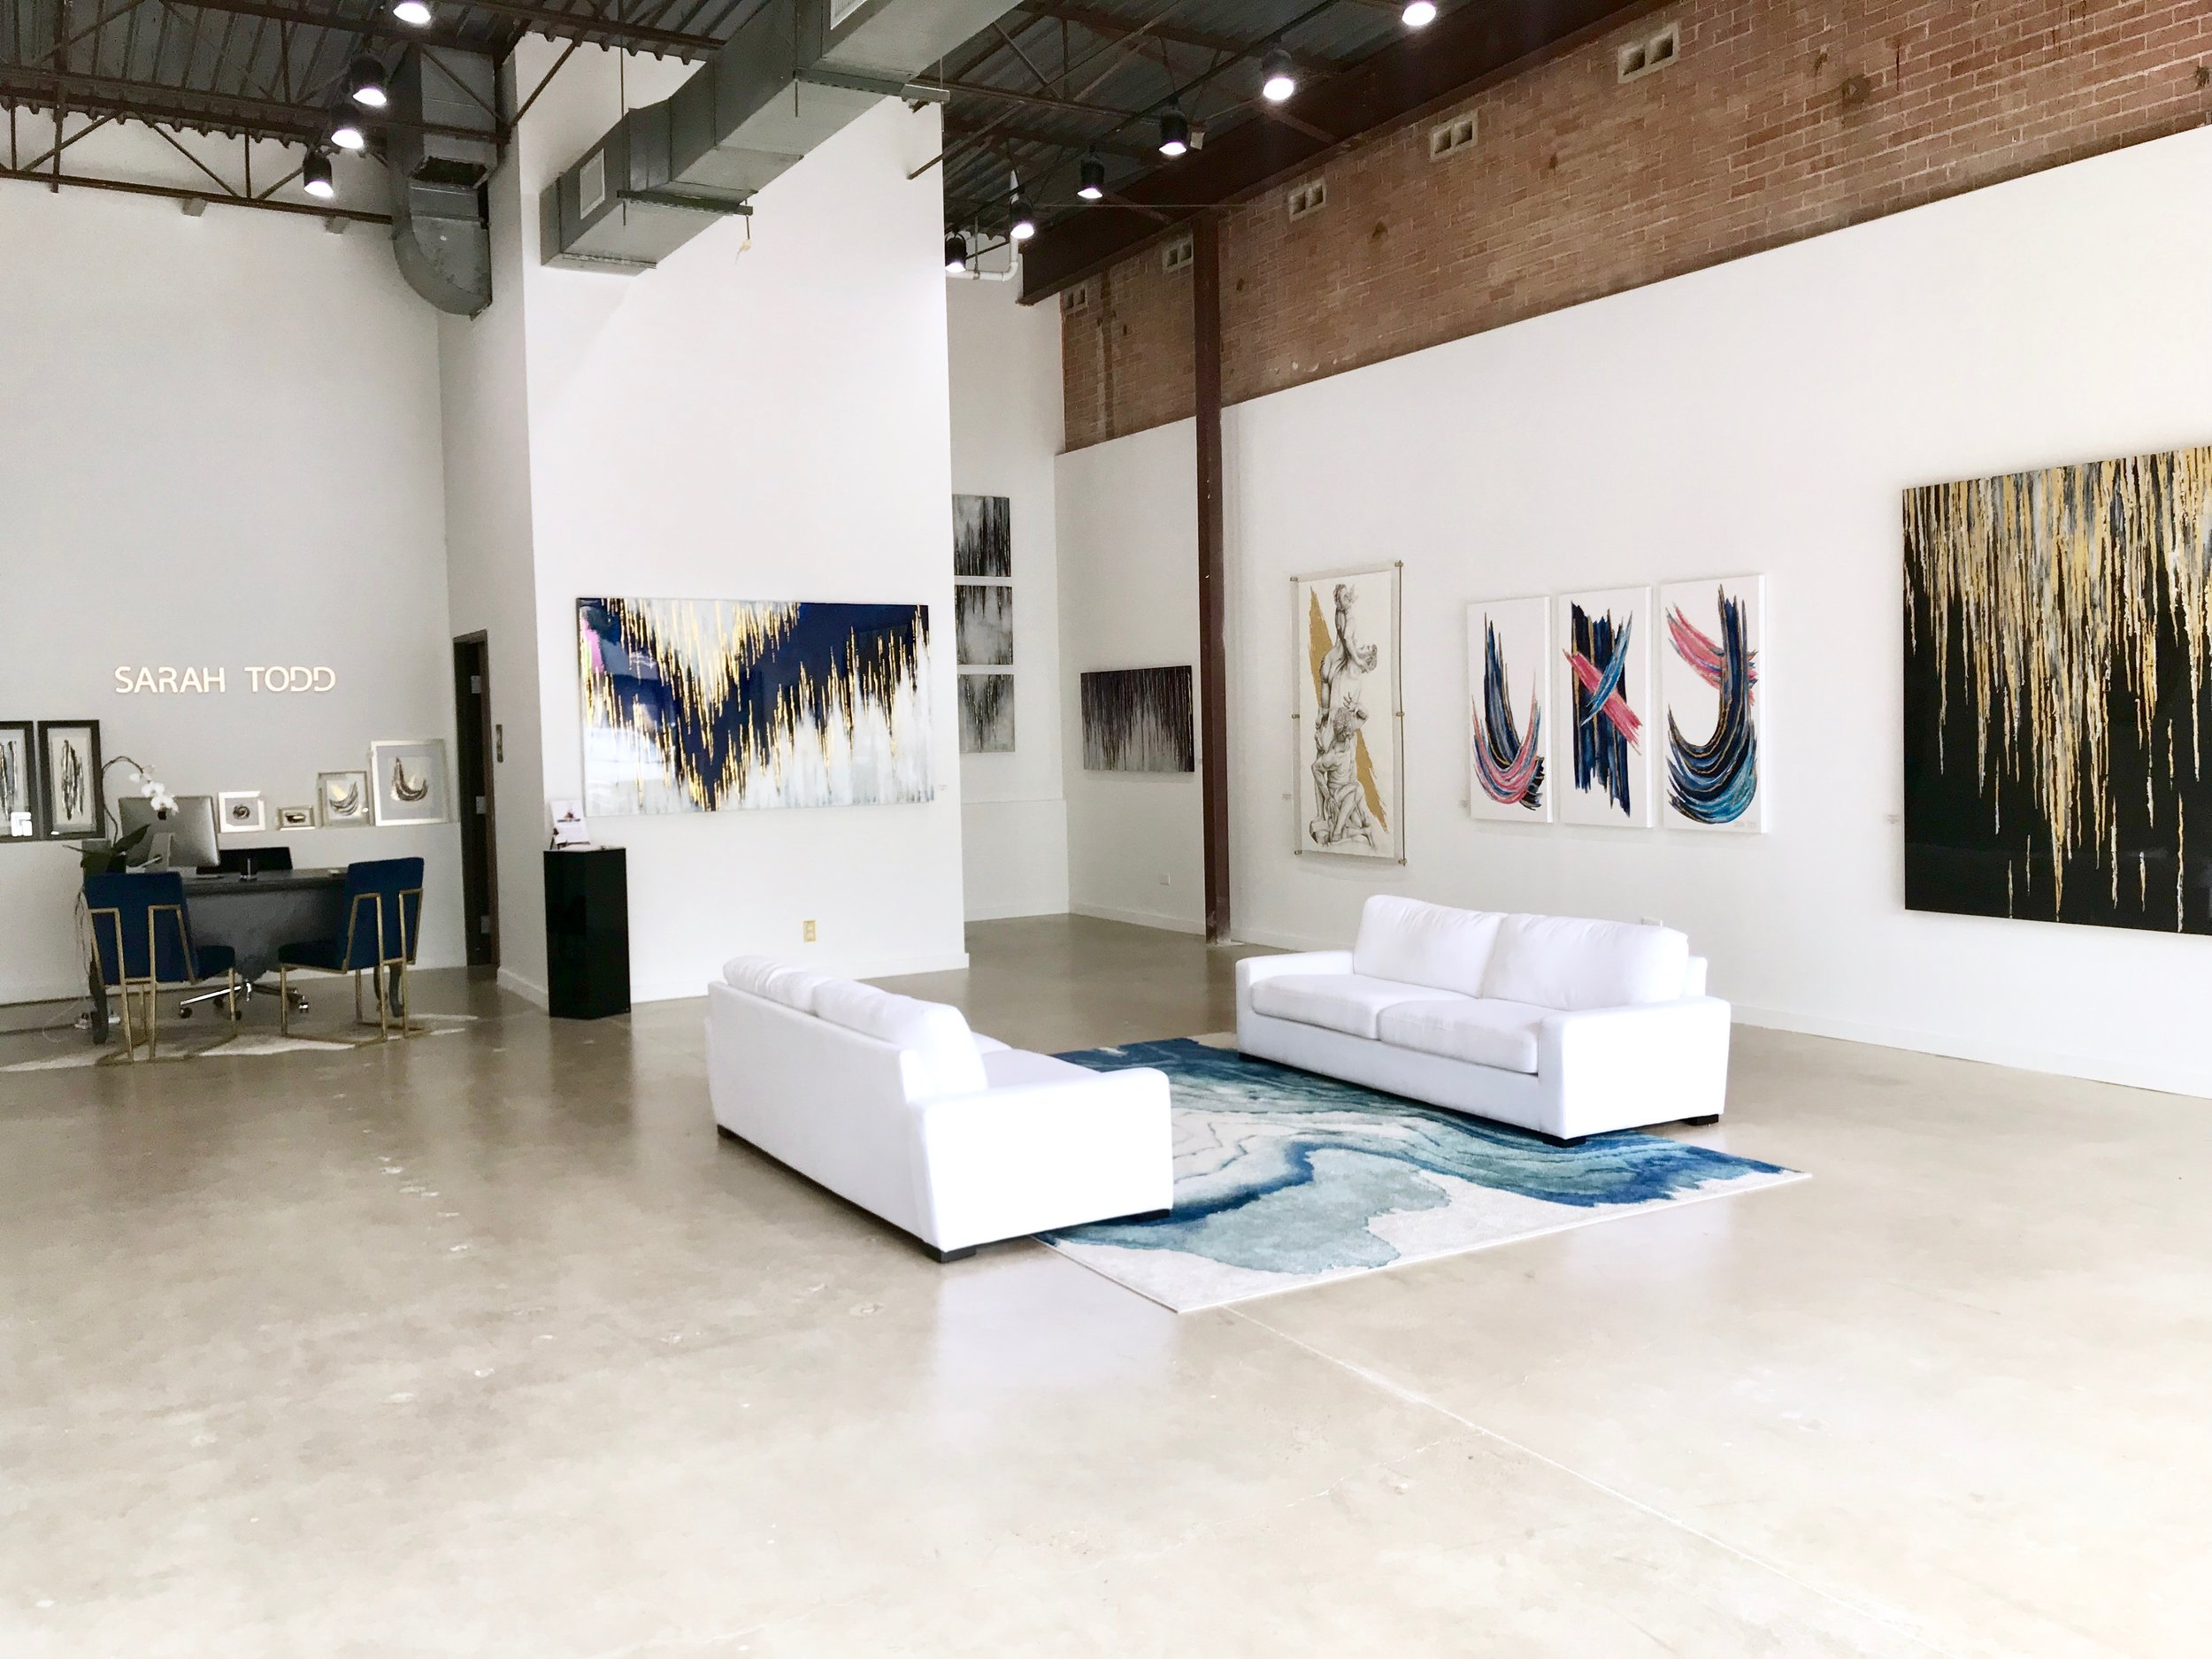 sarah todd gallery - Inwood Village5360 W. Lovers Lane Suite 128Dallas, TX 75209